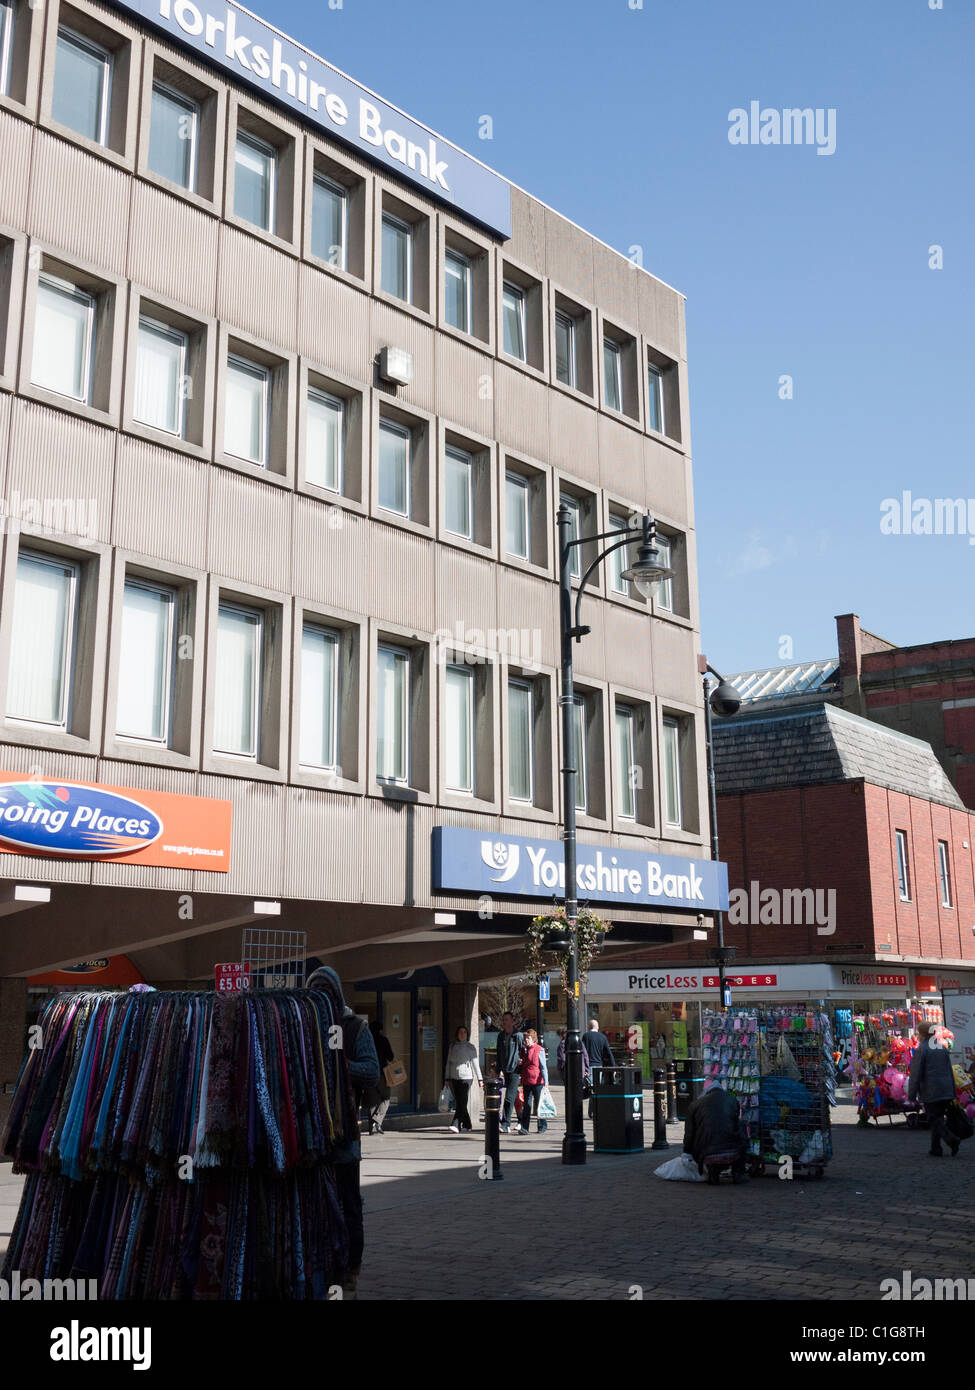 Yorkshire Bank and street sellers Oldham Town Centre, Lancashire, England, UK. - Stock Image